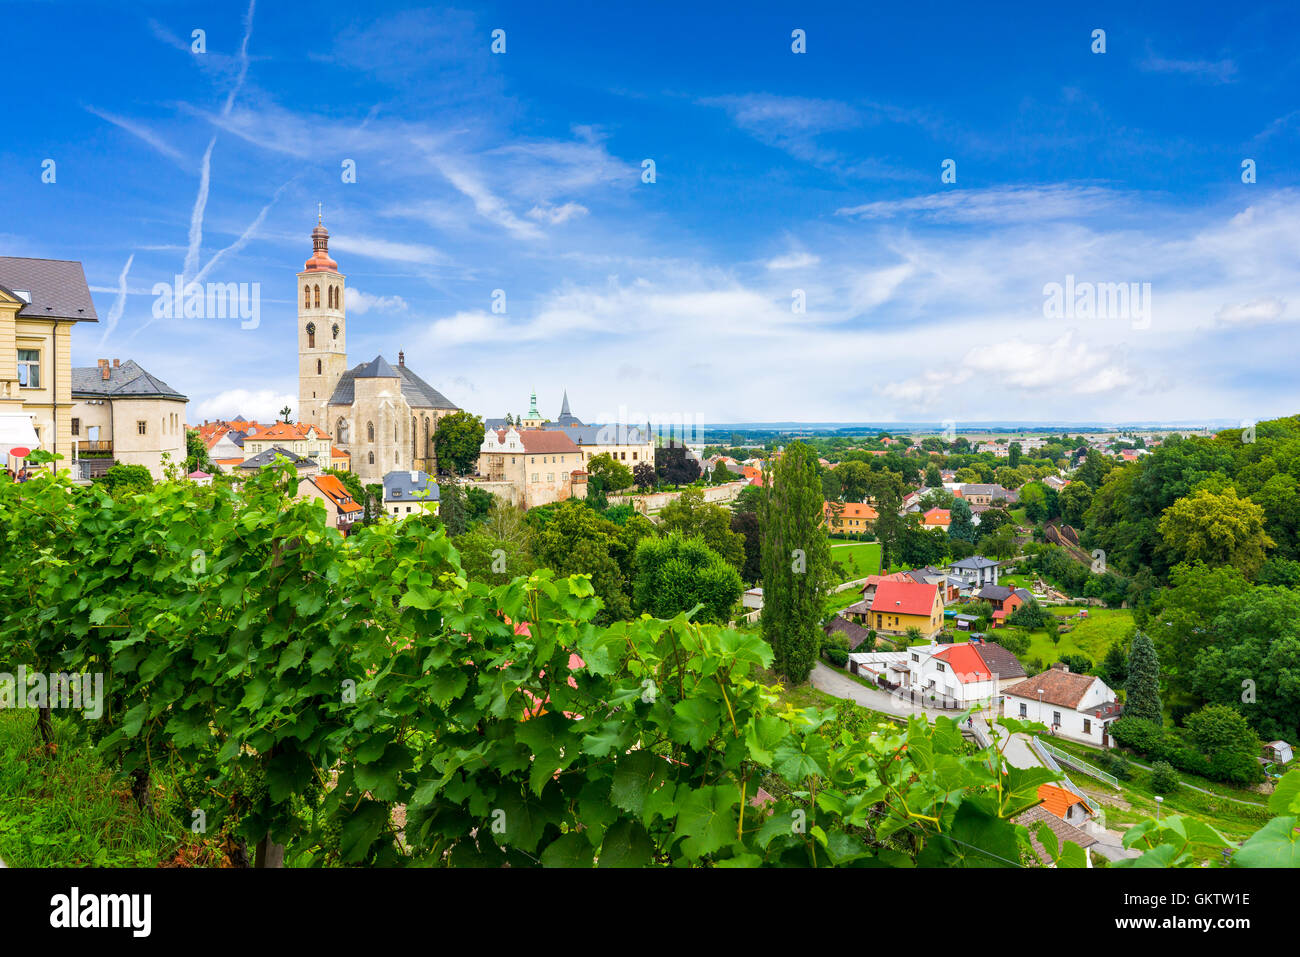 Overlooking a vineyard and the town at Kutna Hora Czech Republic - Stock Image